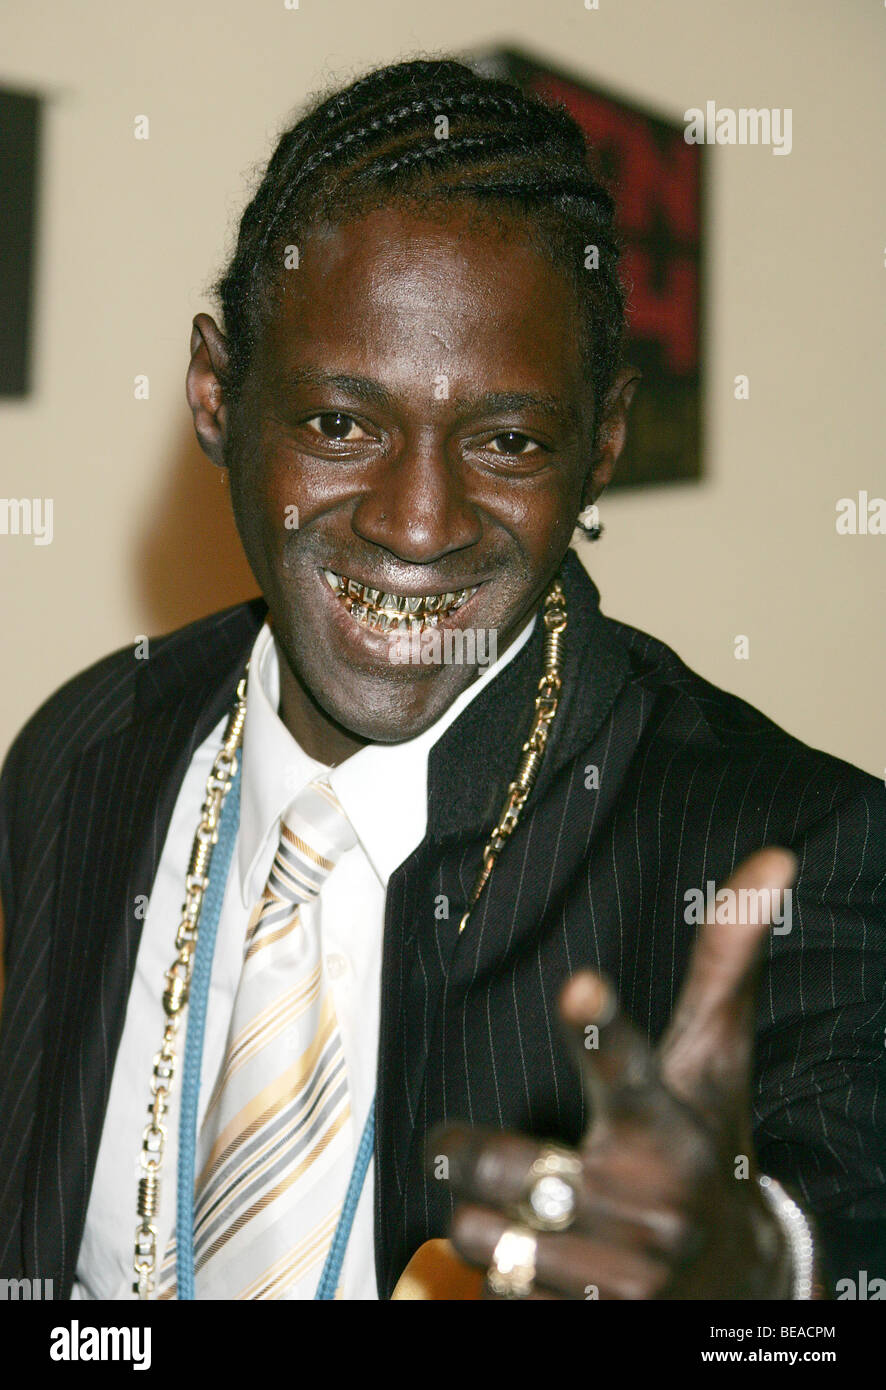 flavor flav of loveflavor flav шоу, flavor flav unga bunga bunga, flavor flav show, flavor flav yeah boy, flavor flav michael jackson, flavor flav eric andre, flavor flav of love, flavor flav clock, flavor flav 2016, flavor flav boi, flavor flav cold lampin lyrics, flavor flav 80s, flavor flav public enemy, flavor flav watch online, flavor flav new york, flavor flav net worth, flavor flav wife, flavor flav ig, flavor flav 2017, flavor flav википедия